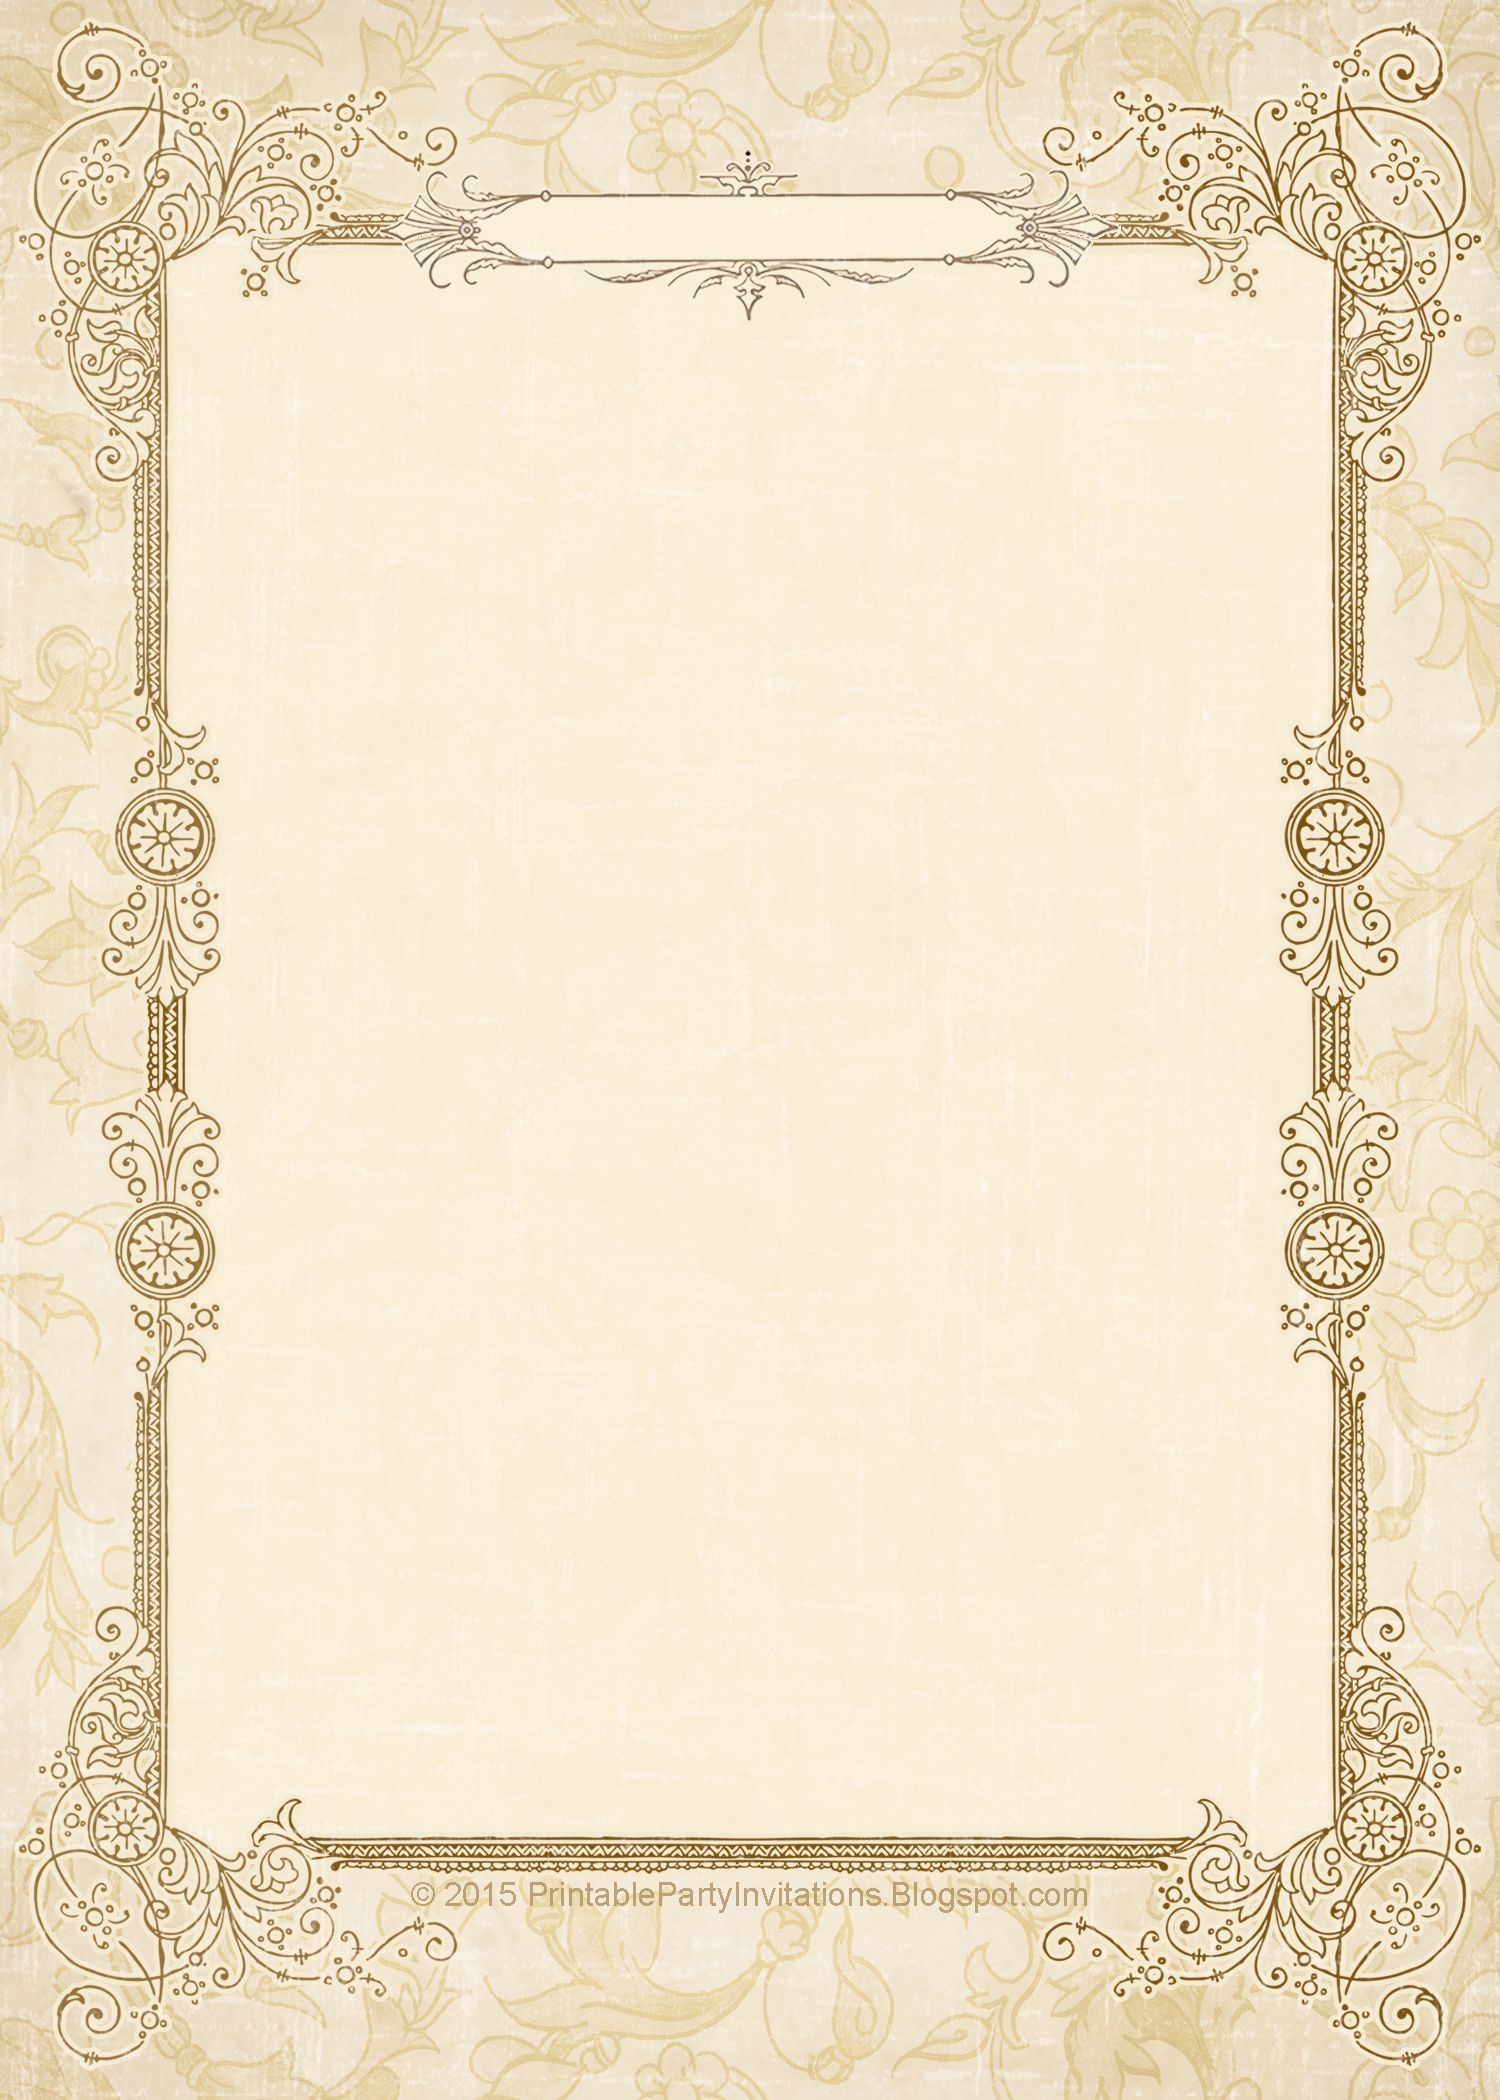 FREE Printable Vintage Wedding Invitations  Vintage wedding